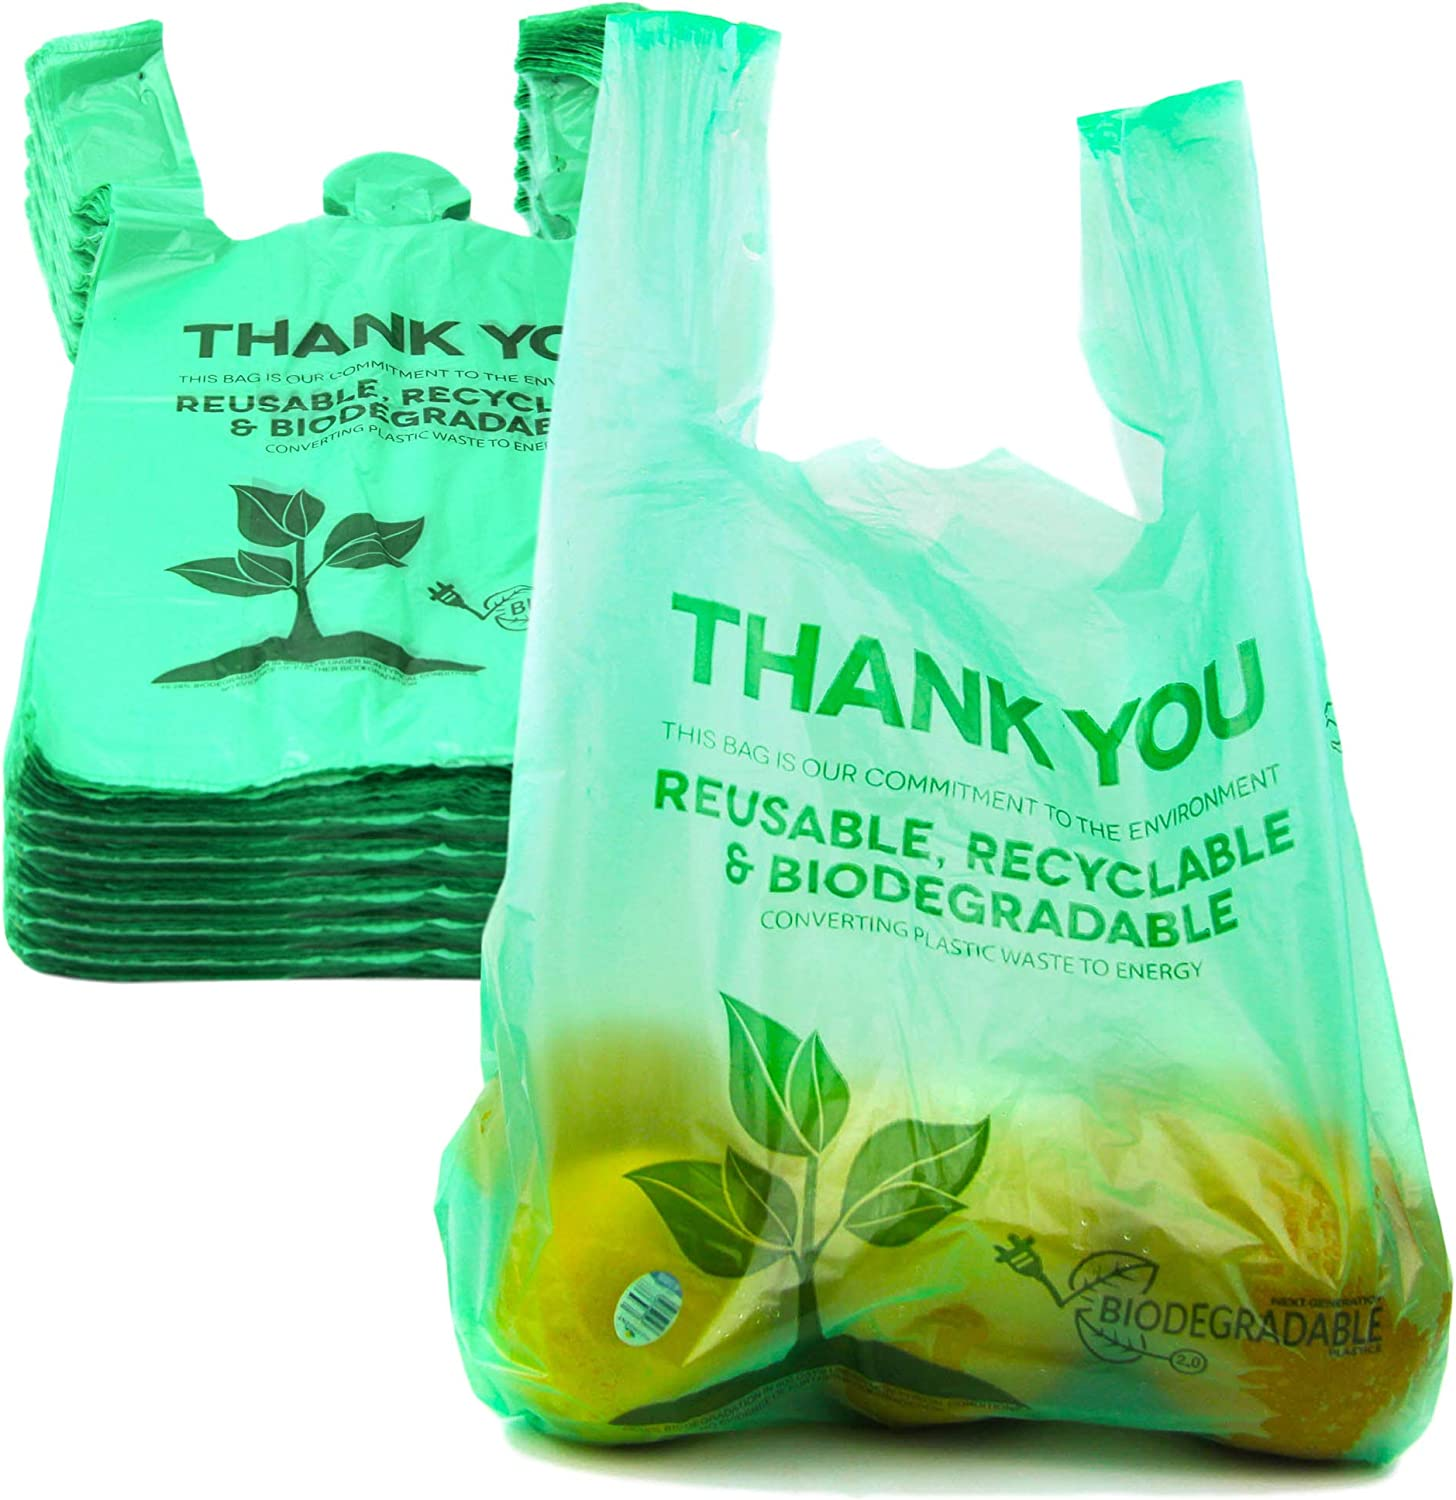 [500 Pack] Biodegradable Reusable Plastic T-Shirt Bag Eco Friendly Compostable Grocery Shopping Thank You Recyclable Trash Basket Bags